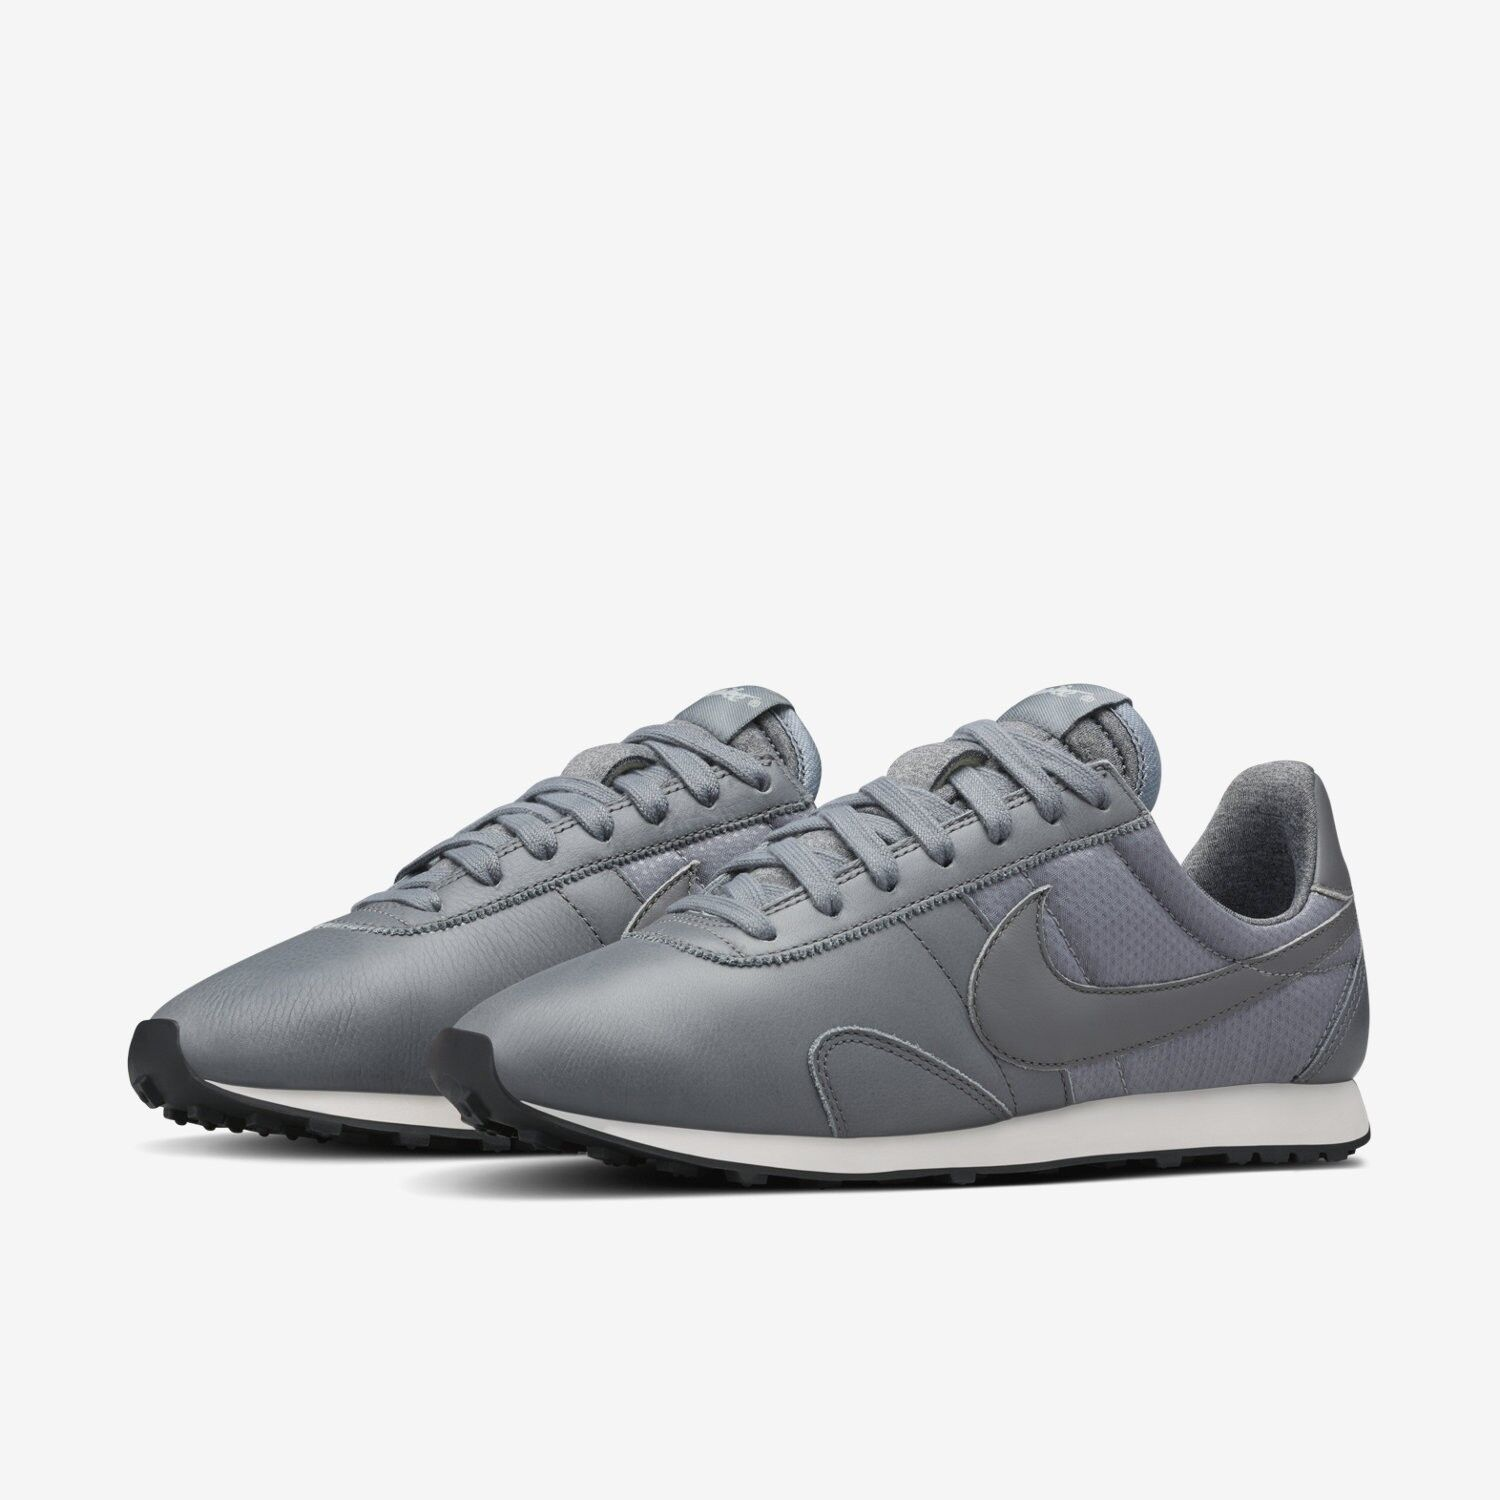 NIKE PRE MONTREAL RACER PINNACLE LEATHER WOMEN'S SHOES SIZE US 7 GREY 839605-002